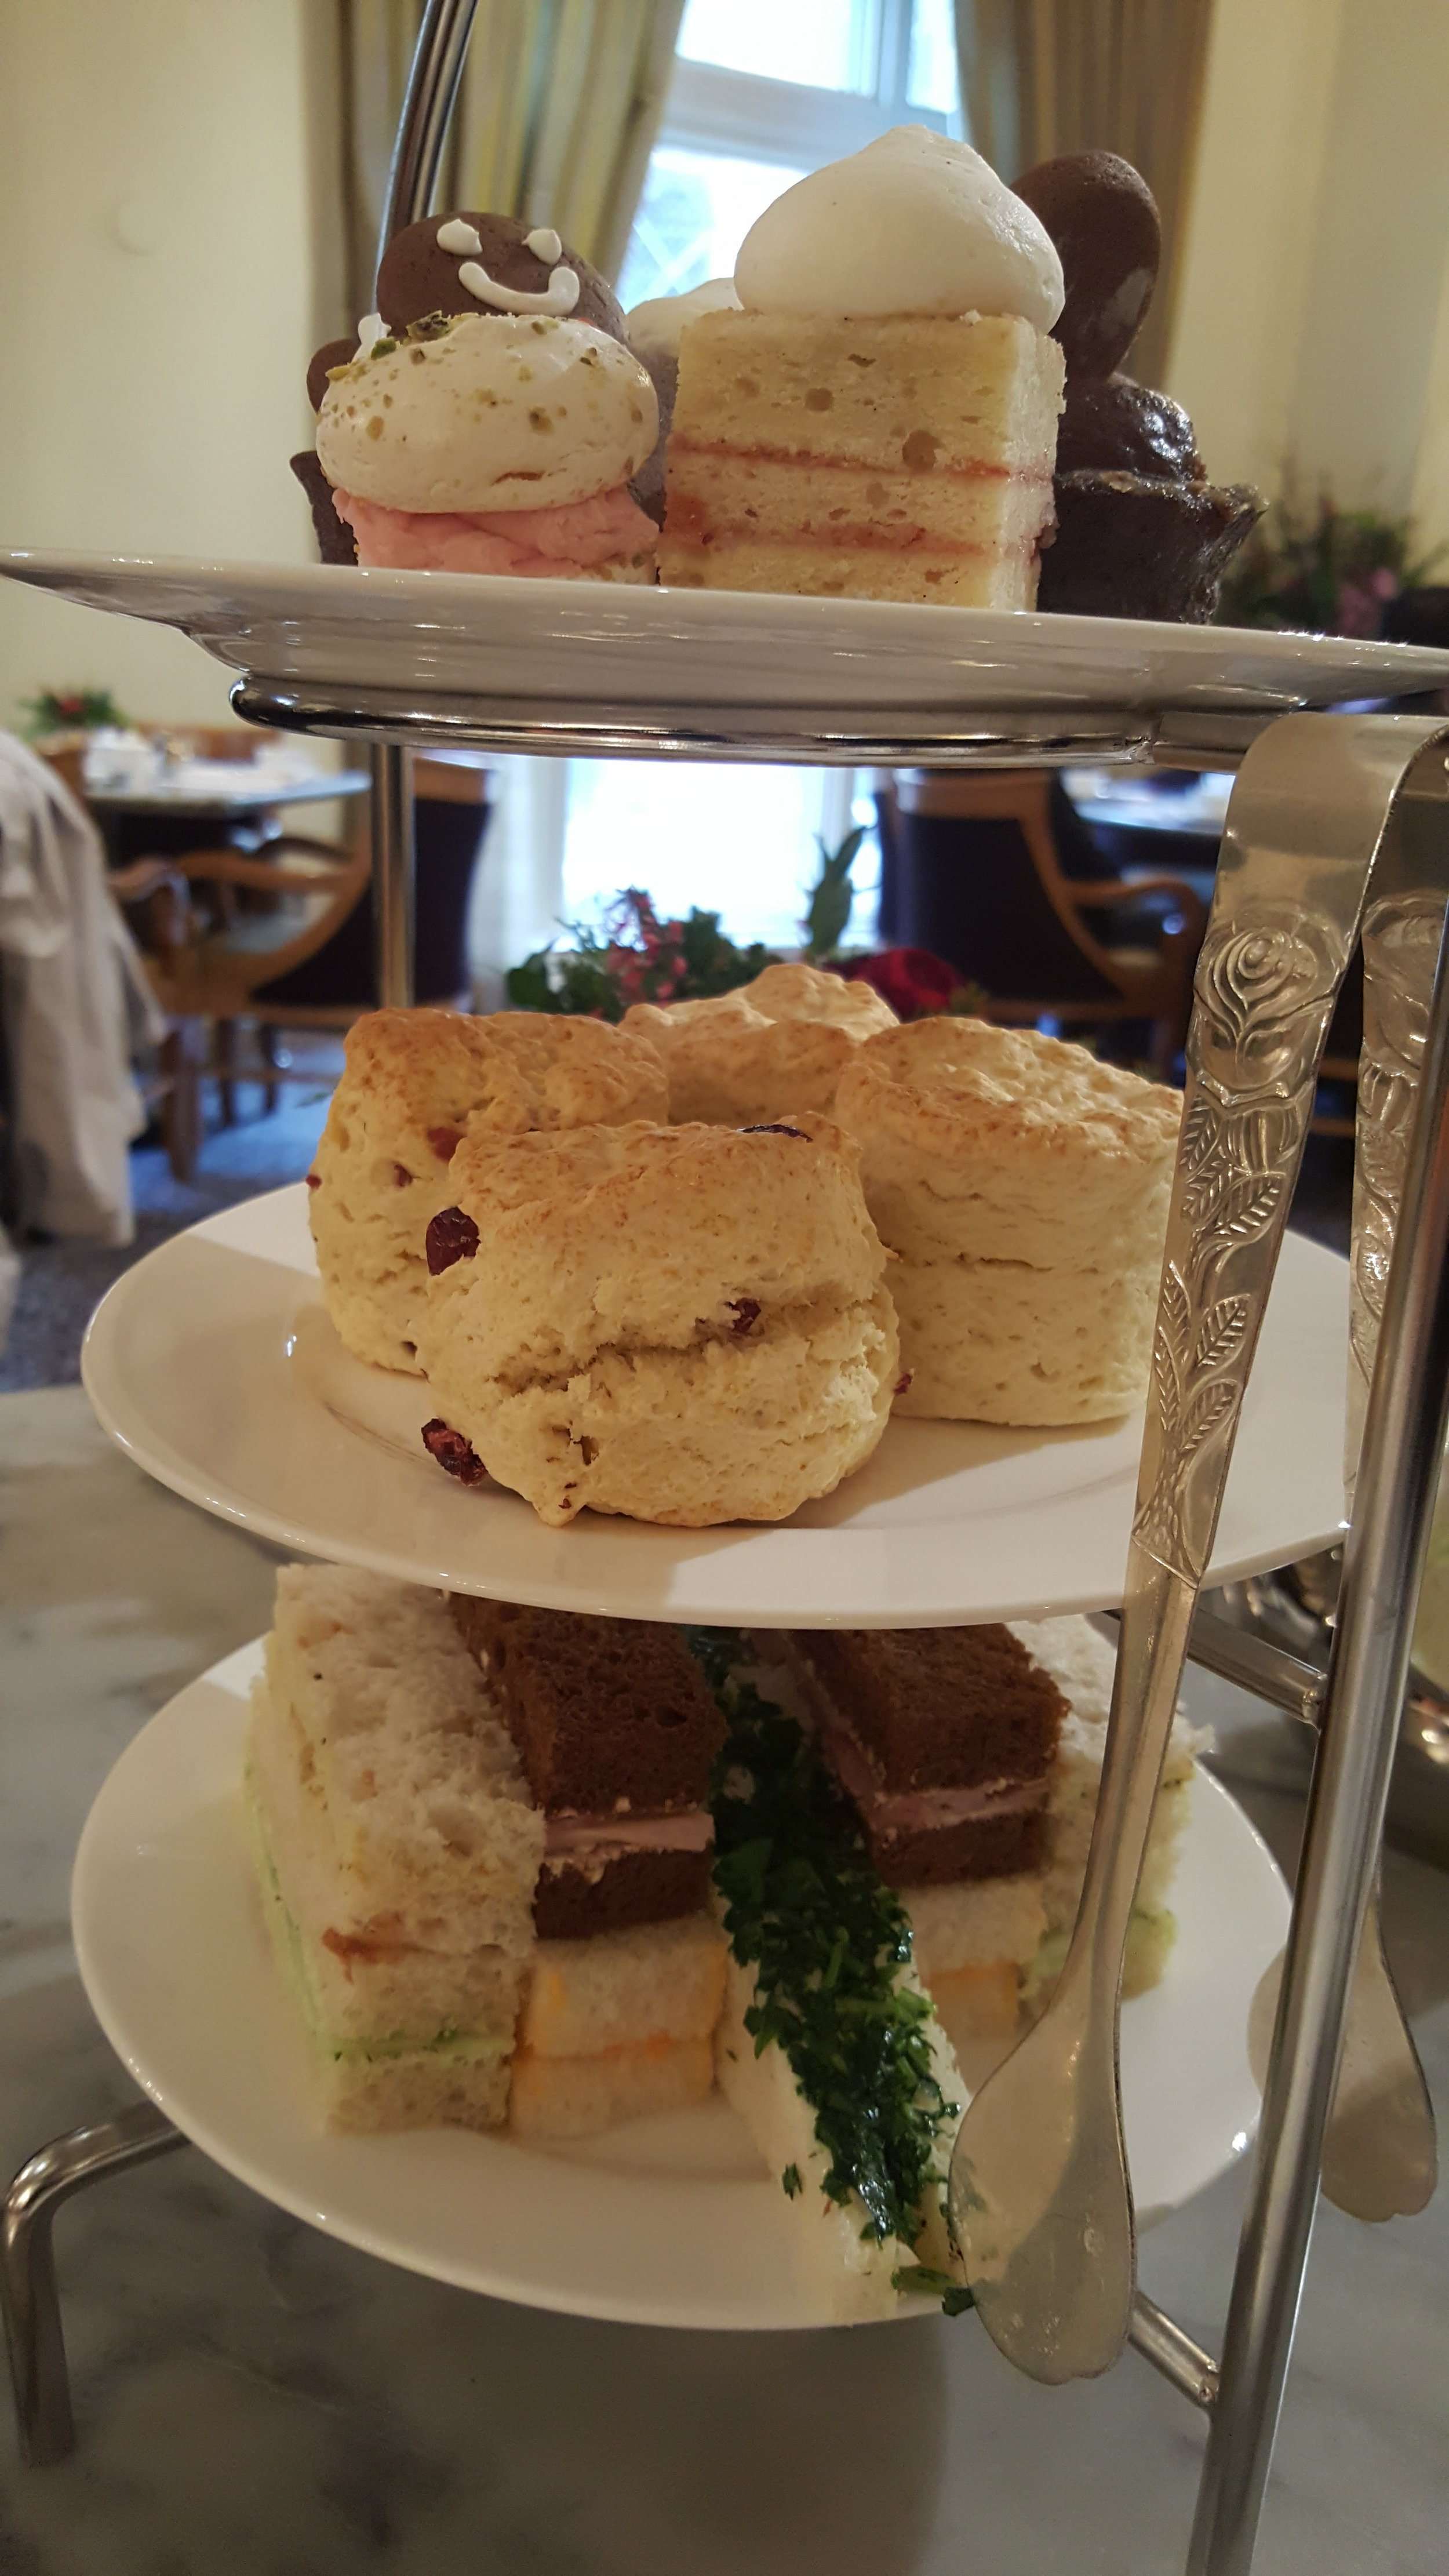 The tower of deliciousness served at Afternoon Tea.